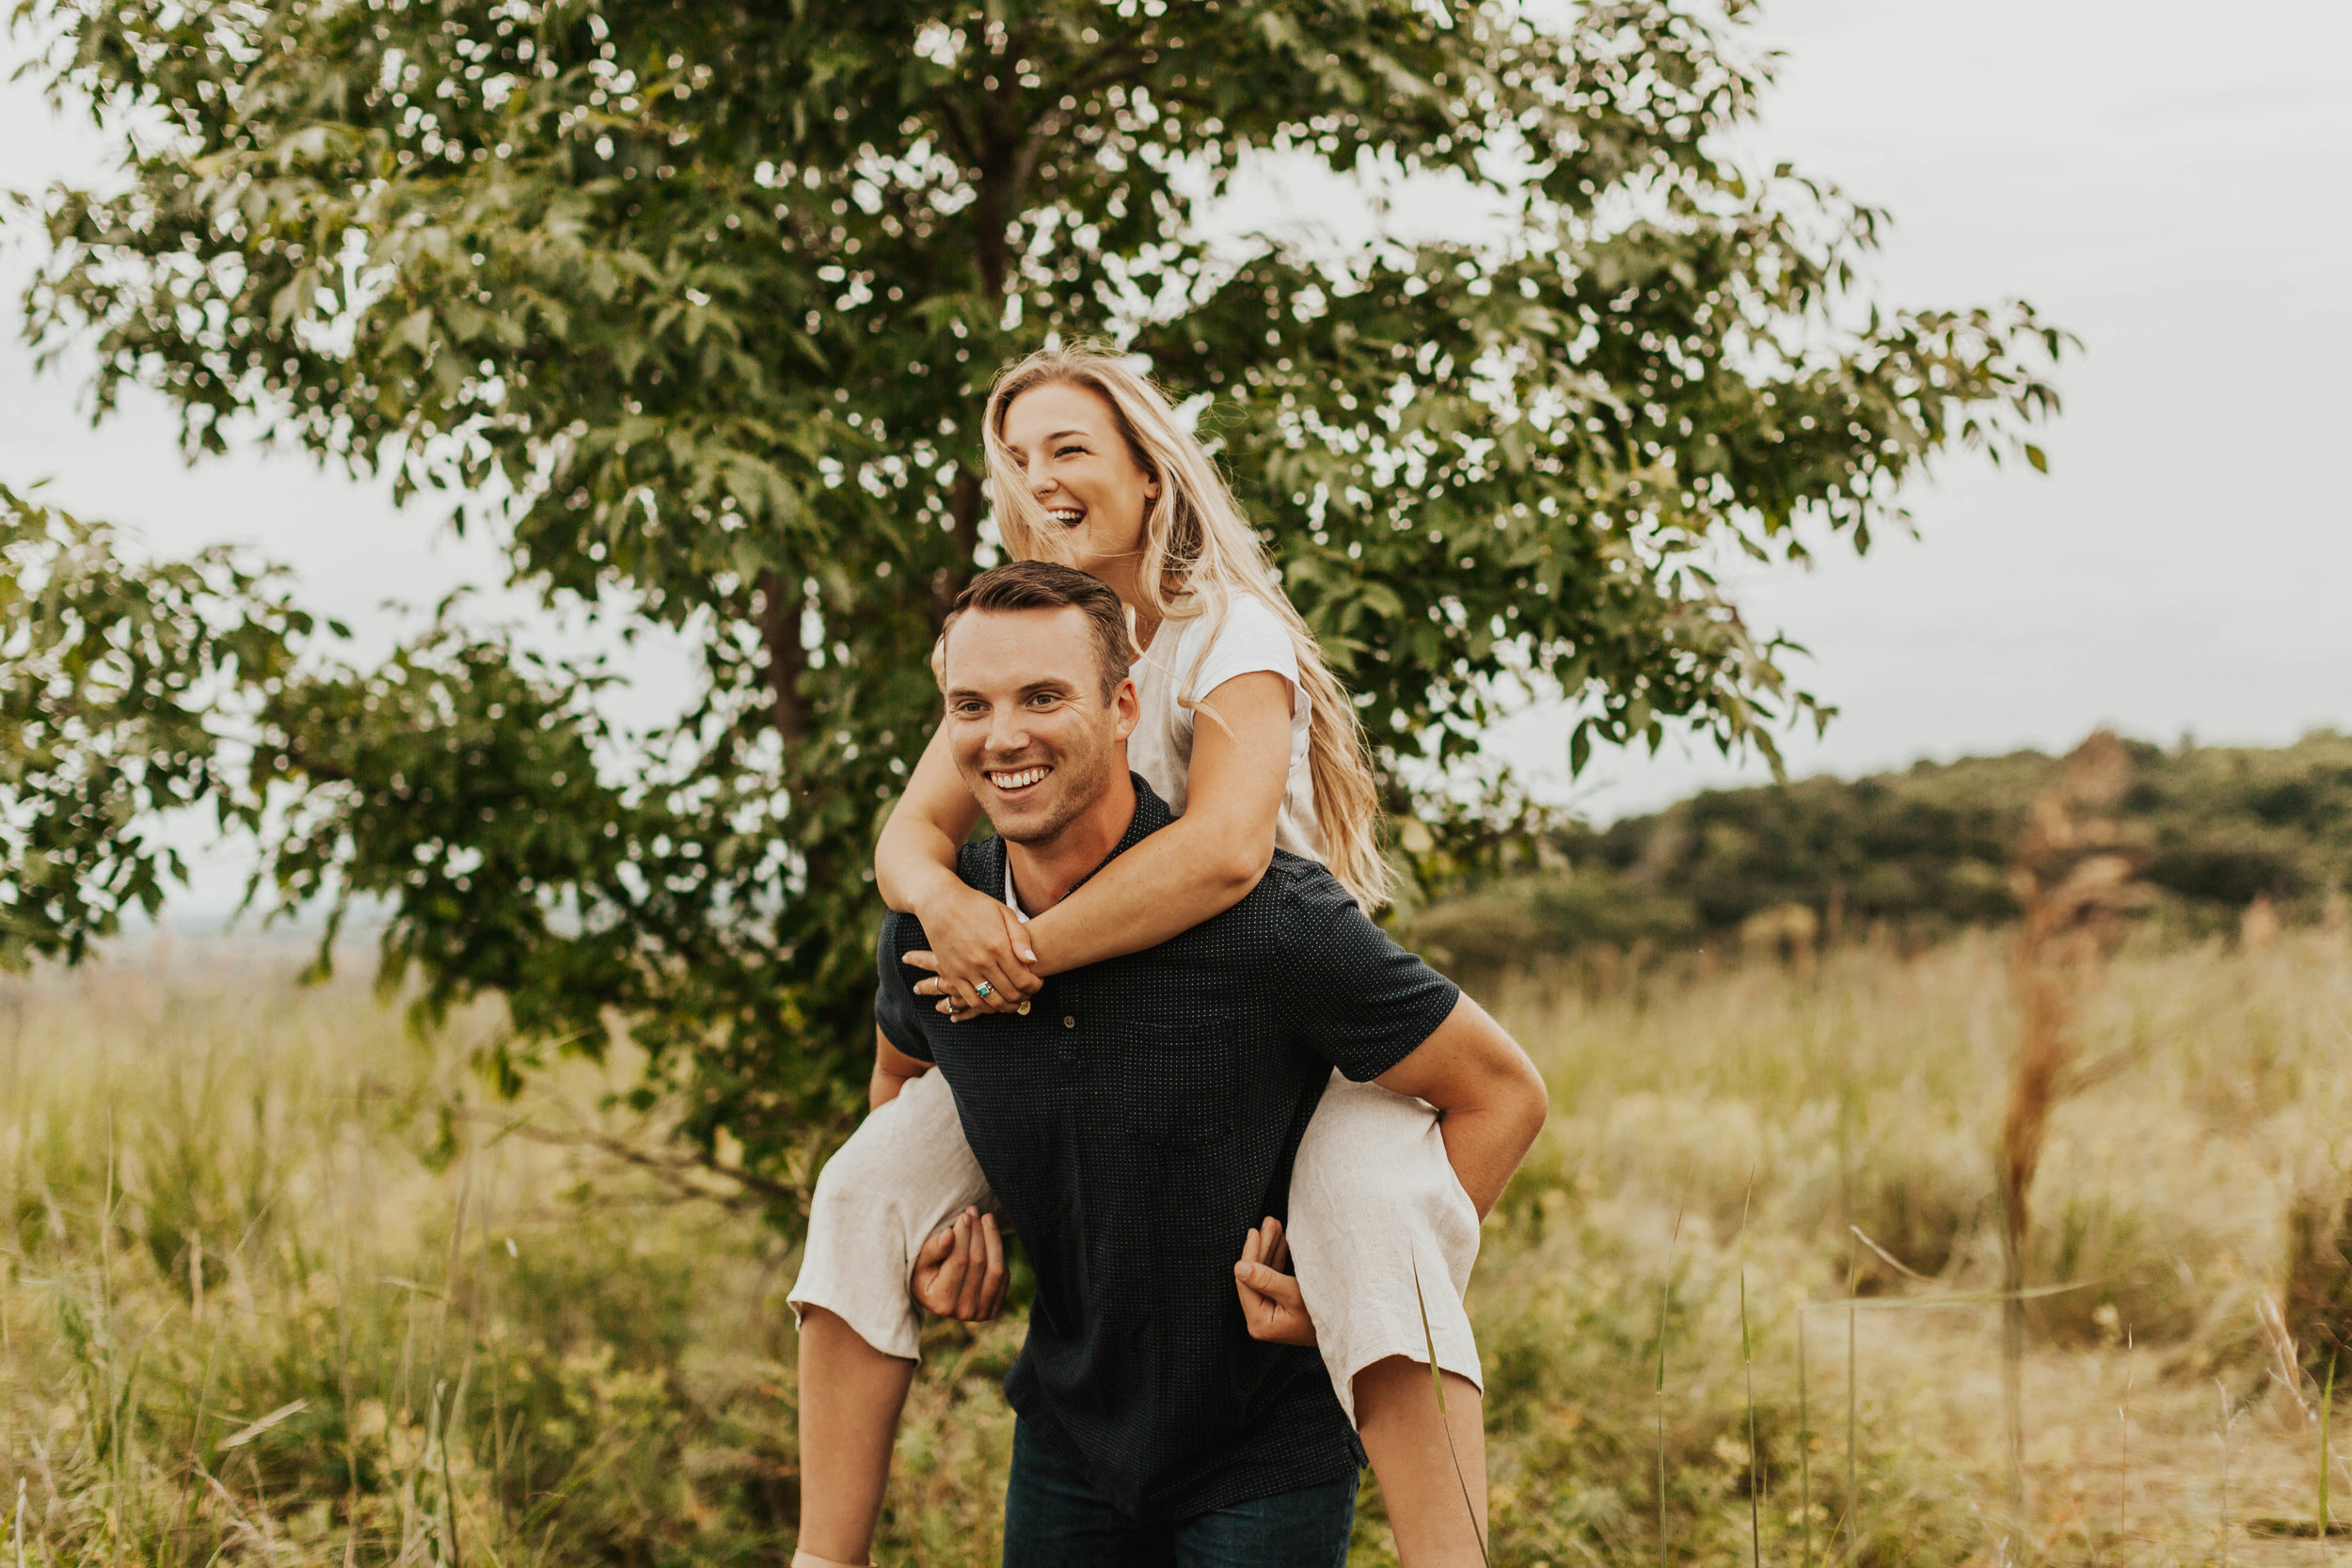 Engagements... 350 - 1 hour of shooting timeunlimited outfitsPrivate Online Gallery2 locations within a couple miles of each othera darn good time